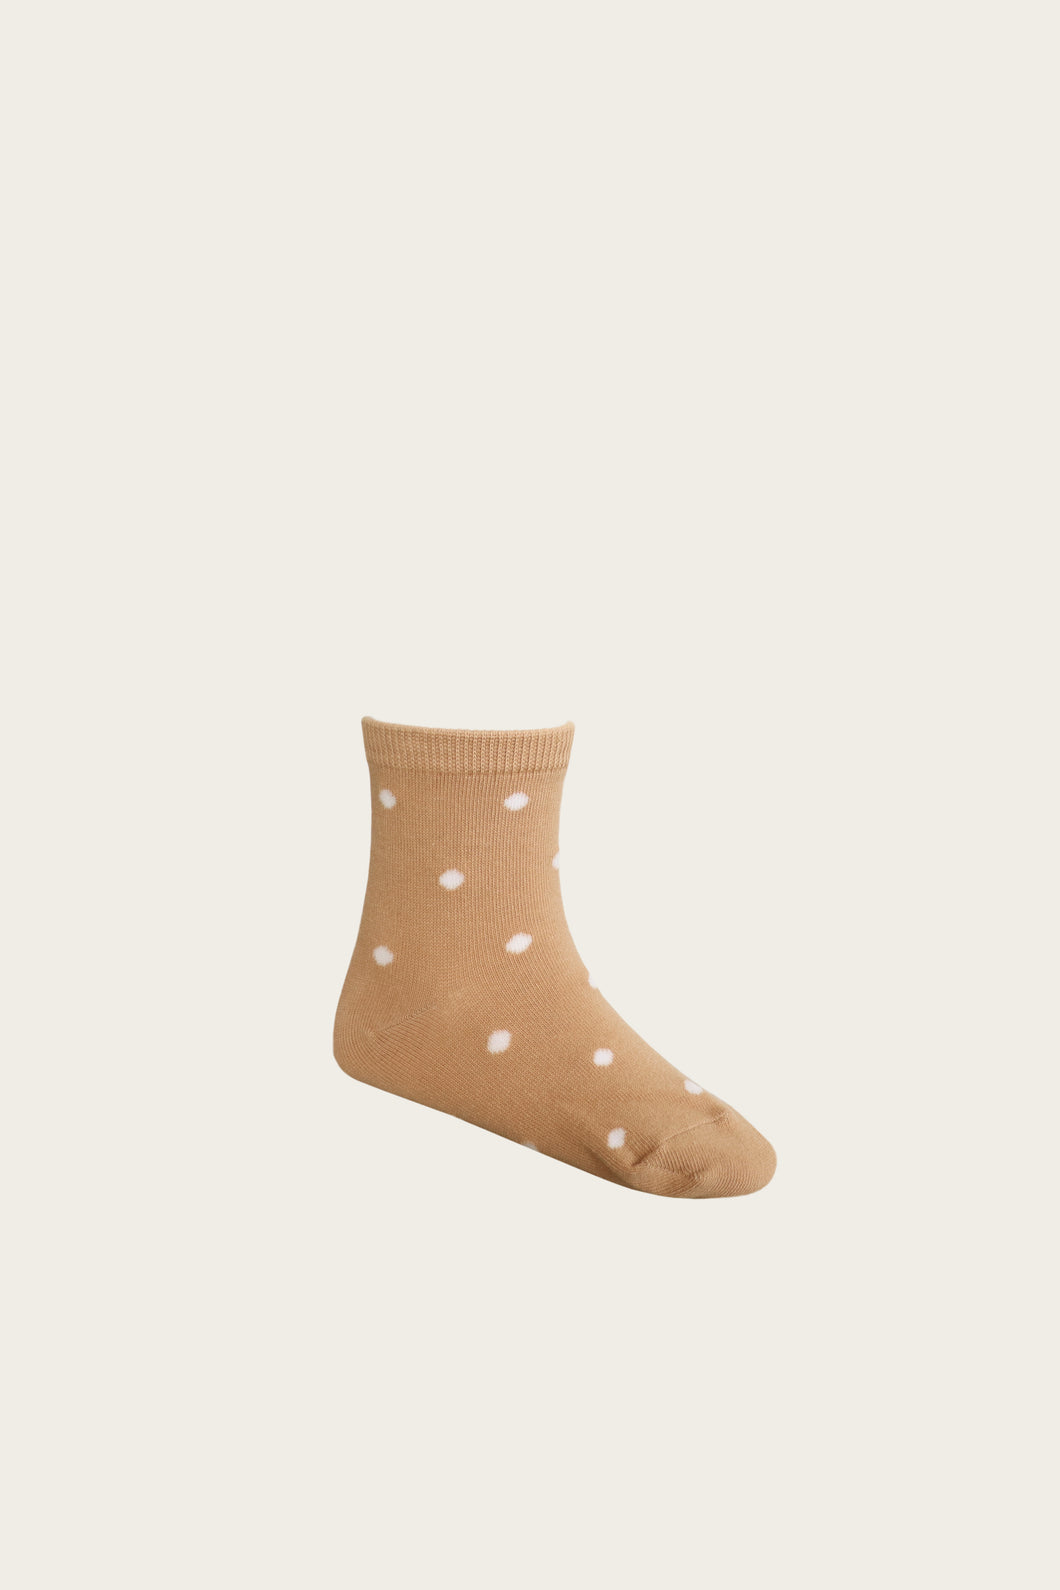 Jamie Kay Dotty sock - sandy